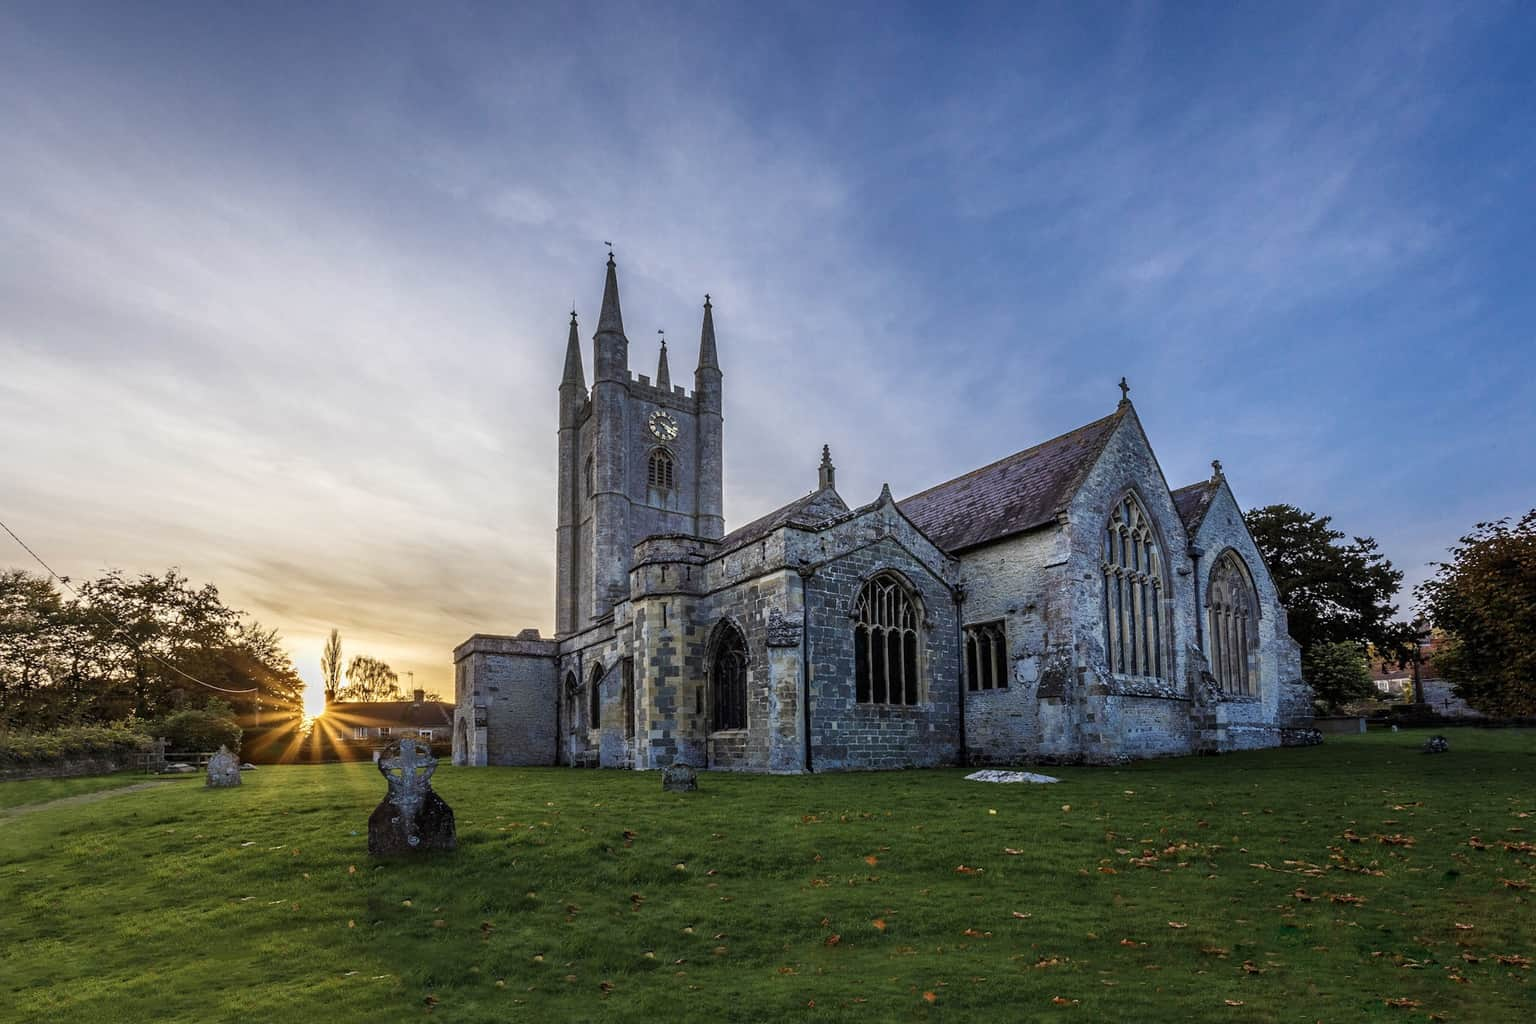 St Michael's Church in Mere by Rick McEvoy Architectural Photographer in Wiltshire